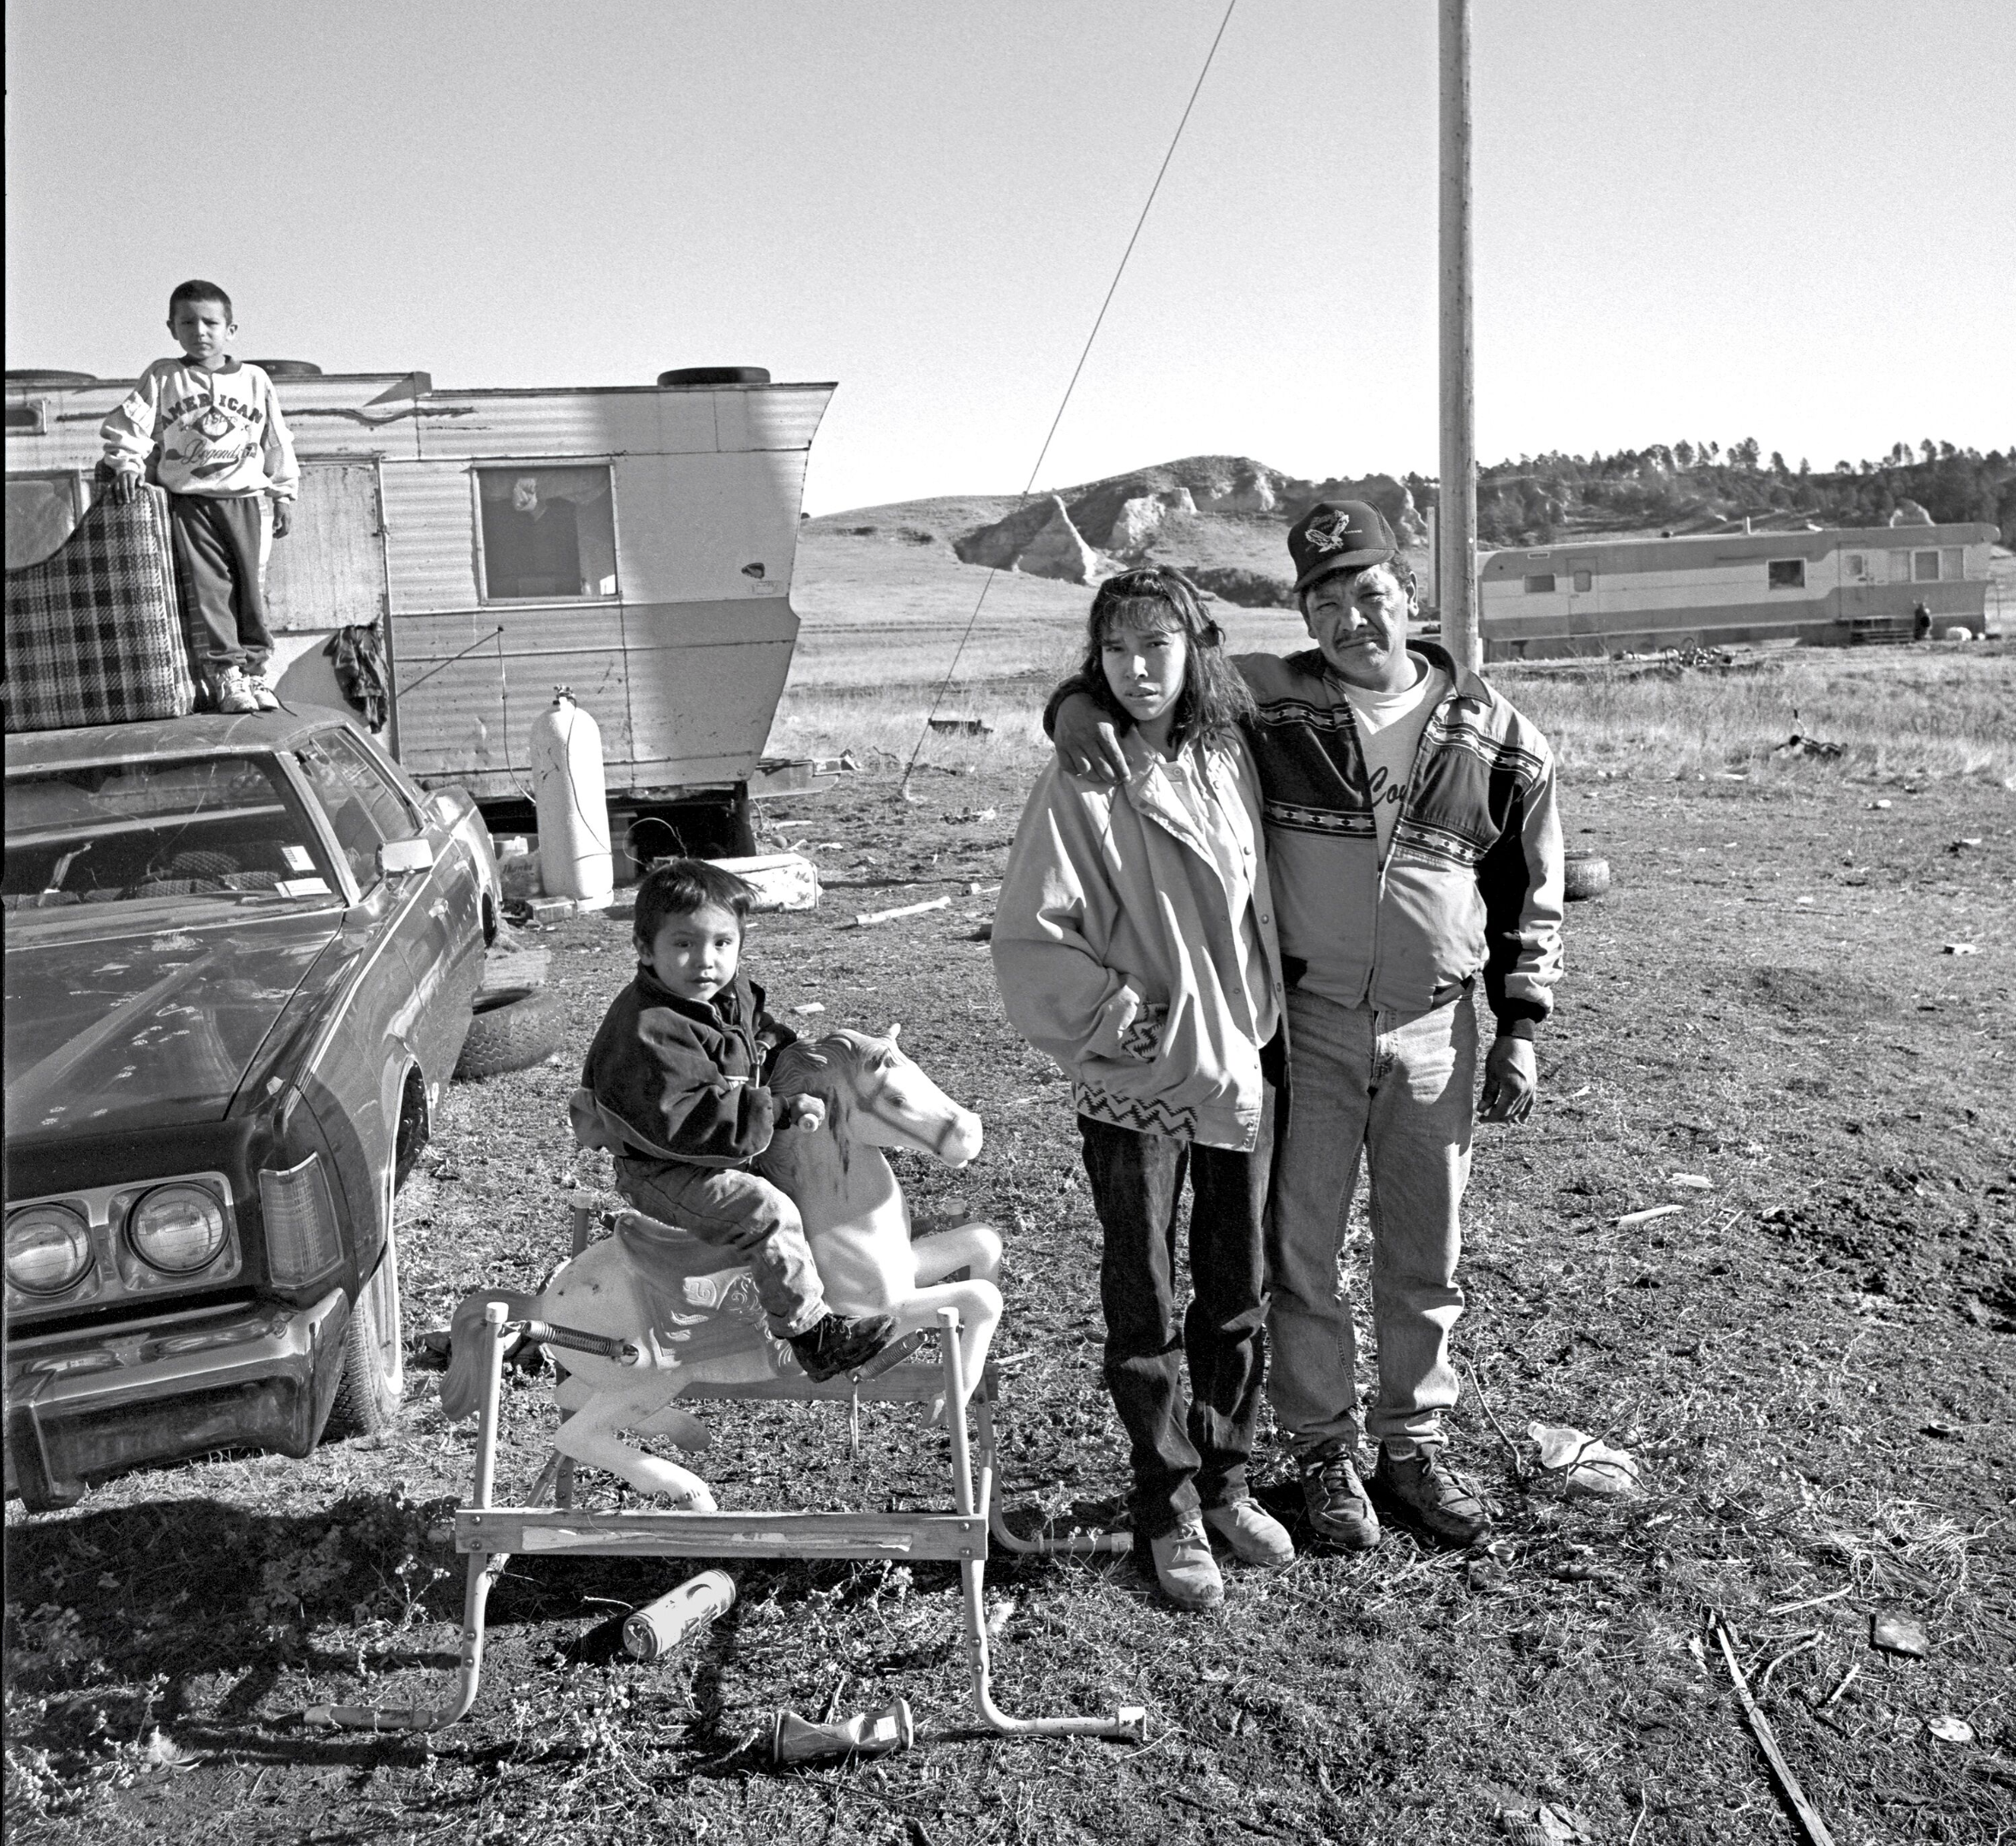 Oglala Sioux Family, The Pine Ridge Indian Reservation, South Dakota, 1996